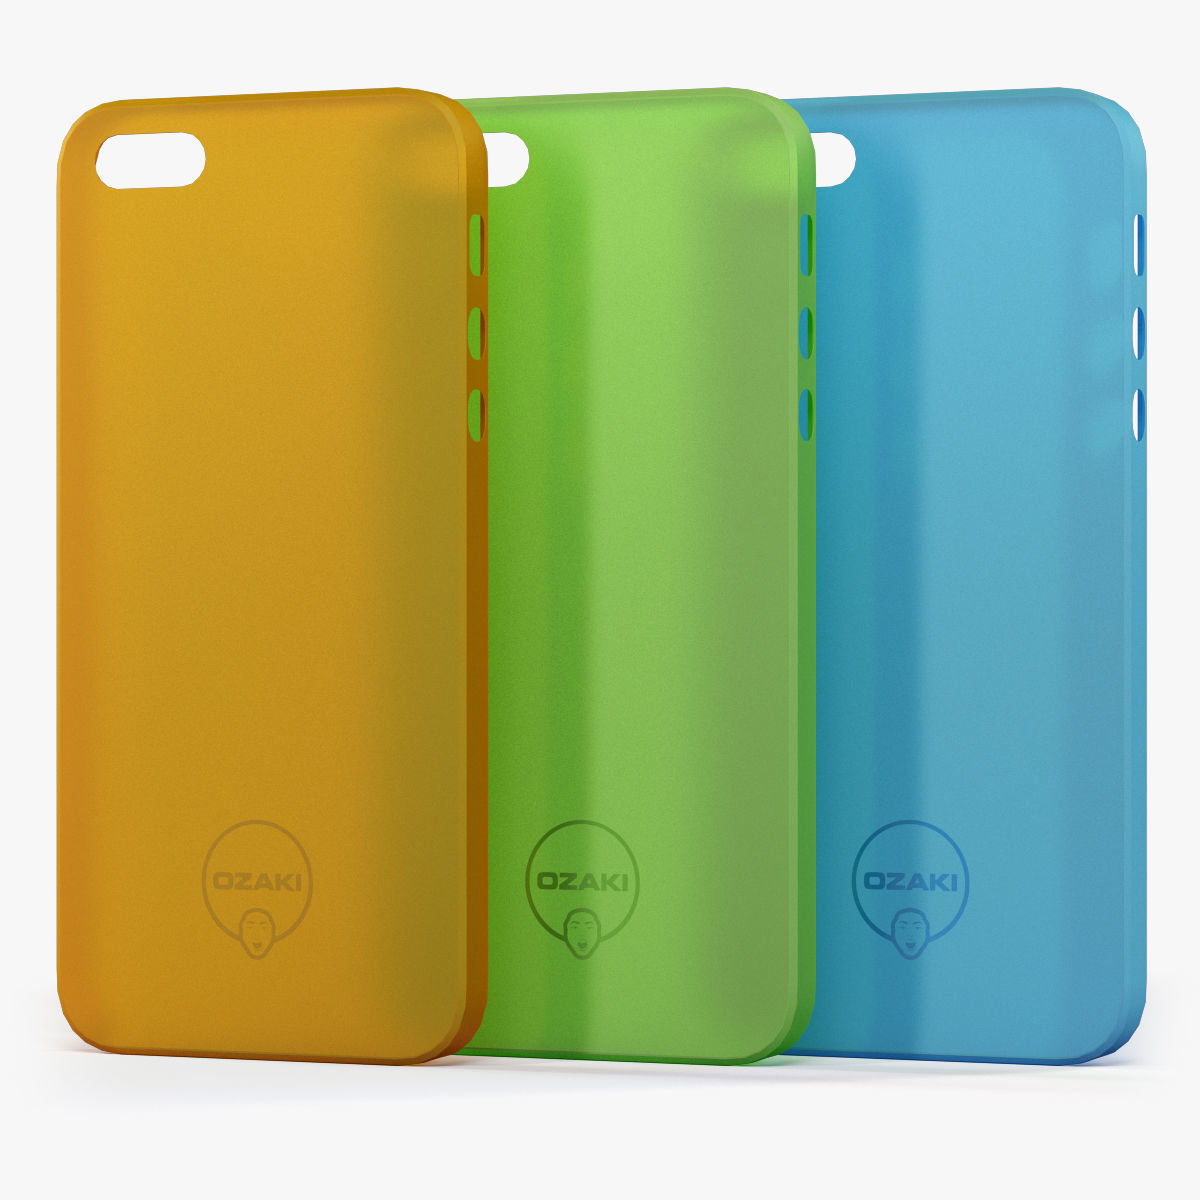 Case Ozaki Jelly for iPhone 5